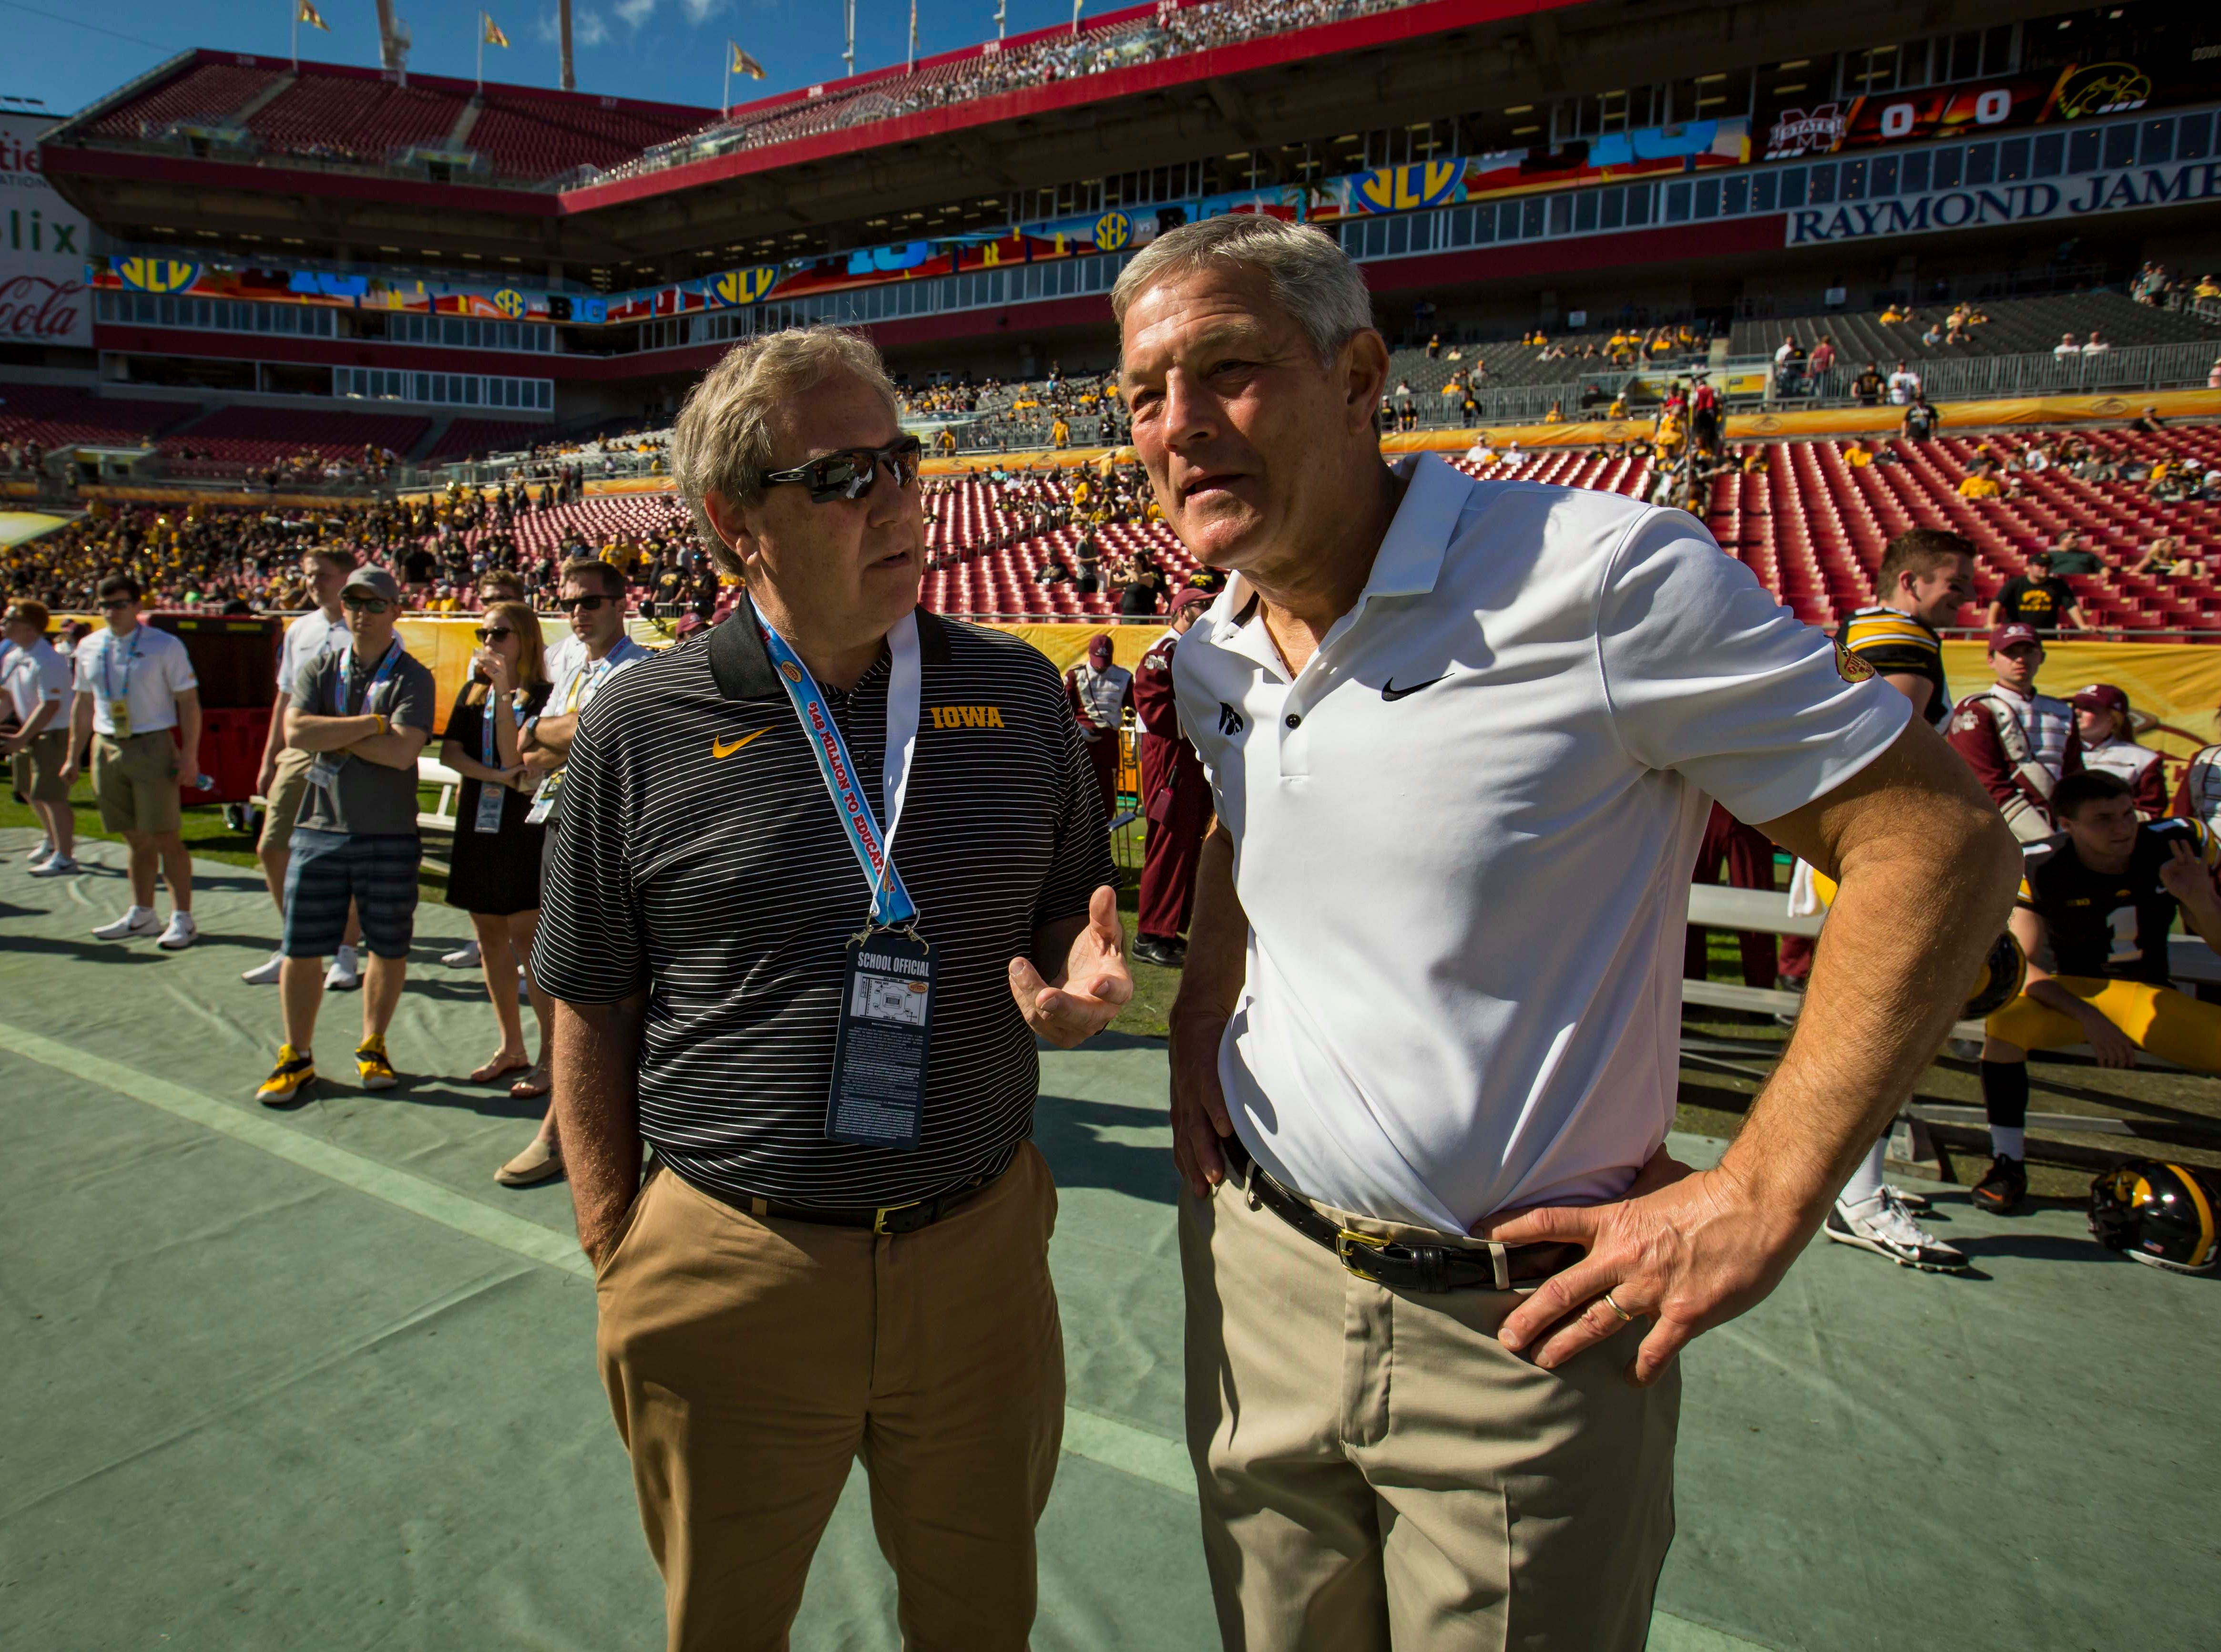 Iowa coach Kirk Ferentz and UI President Bruce Harreld meet before the Outback Bowl Tues., Jan. 1, 2019, at Raymond James Stadium in Tampa, Florida.